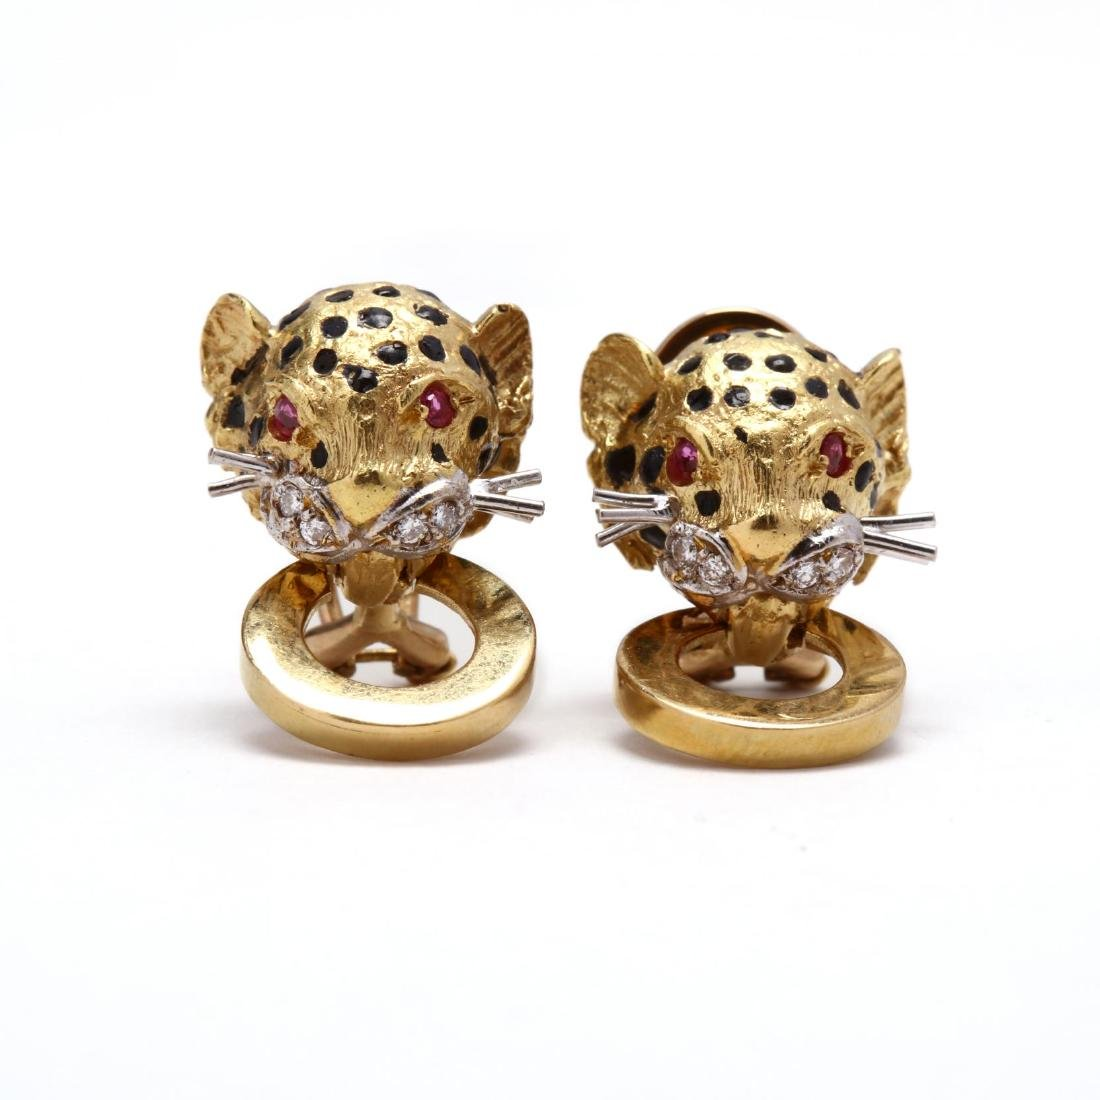 18KT Gold, Enamel, and Gem Set Cheetah Earrings and - 2